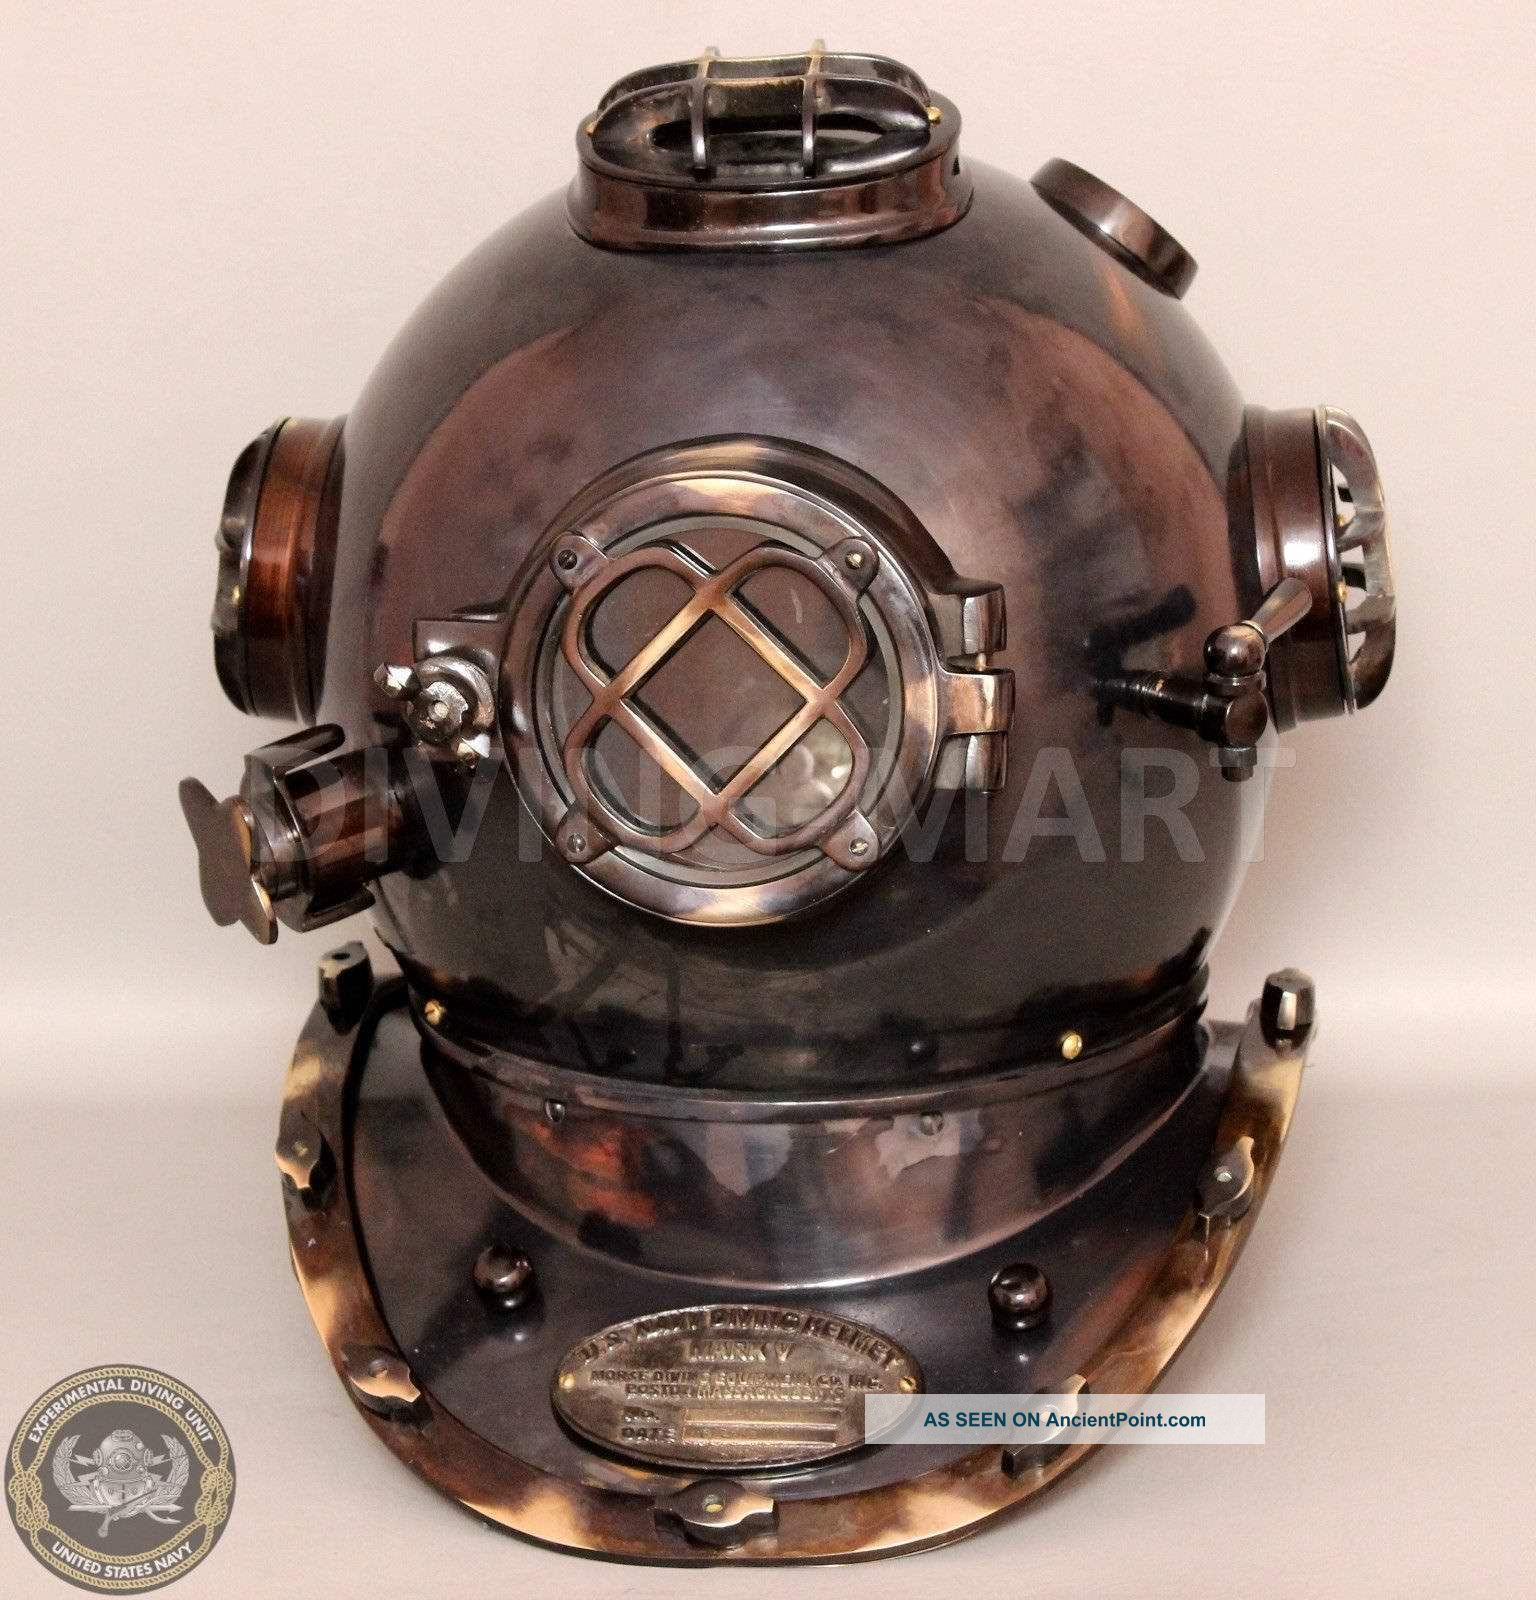 Vintage U.  S Navy Mark V Divers Diving Helmet Solid Copper & Brass Antique Diving Helmets photo